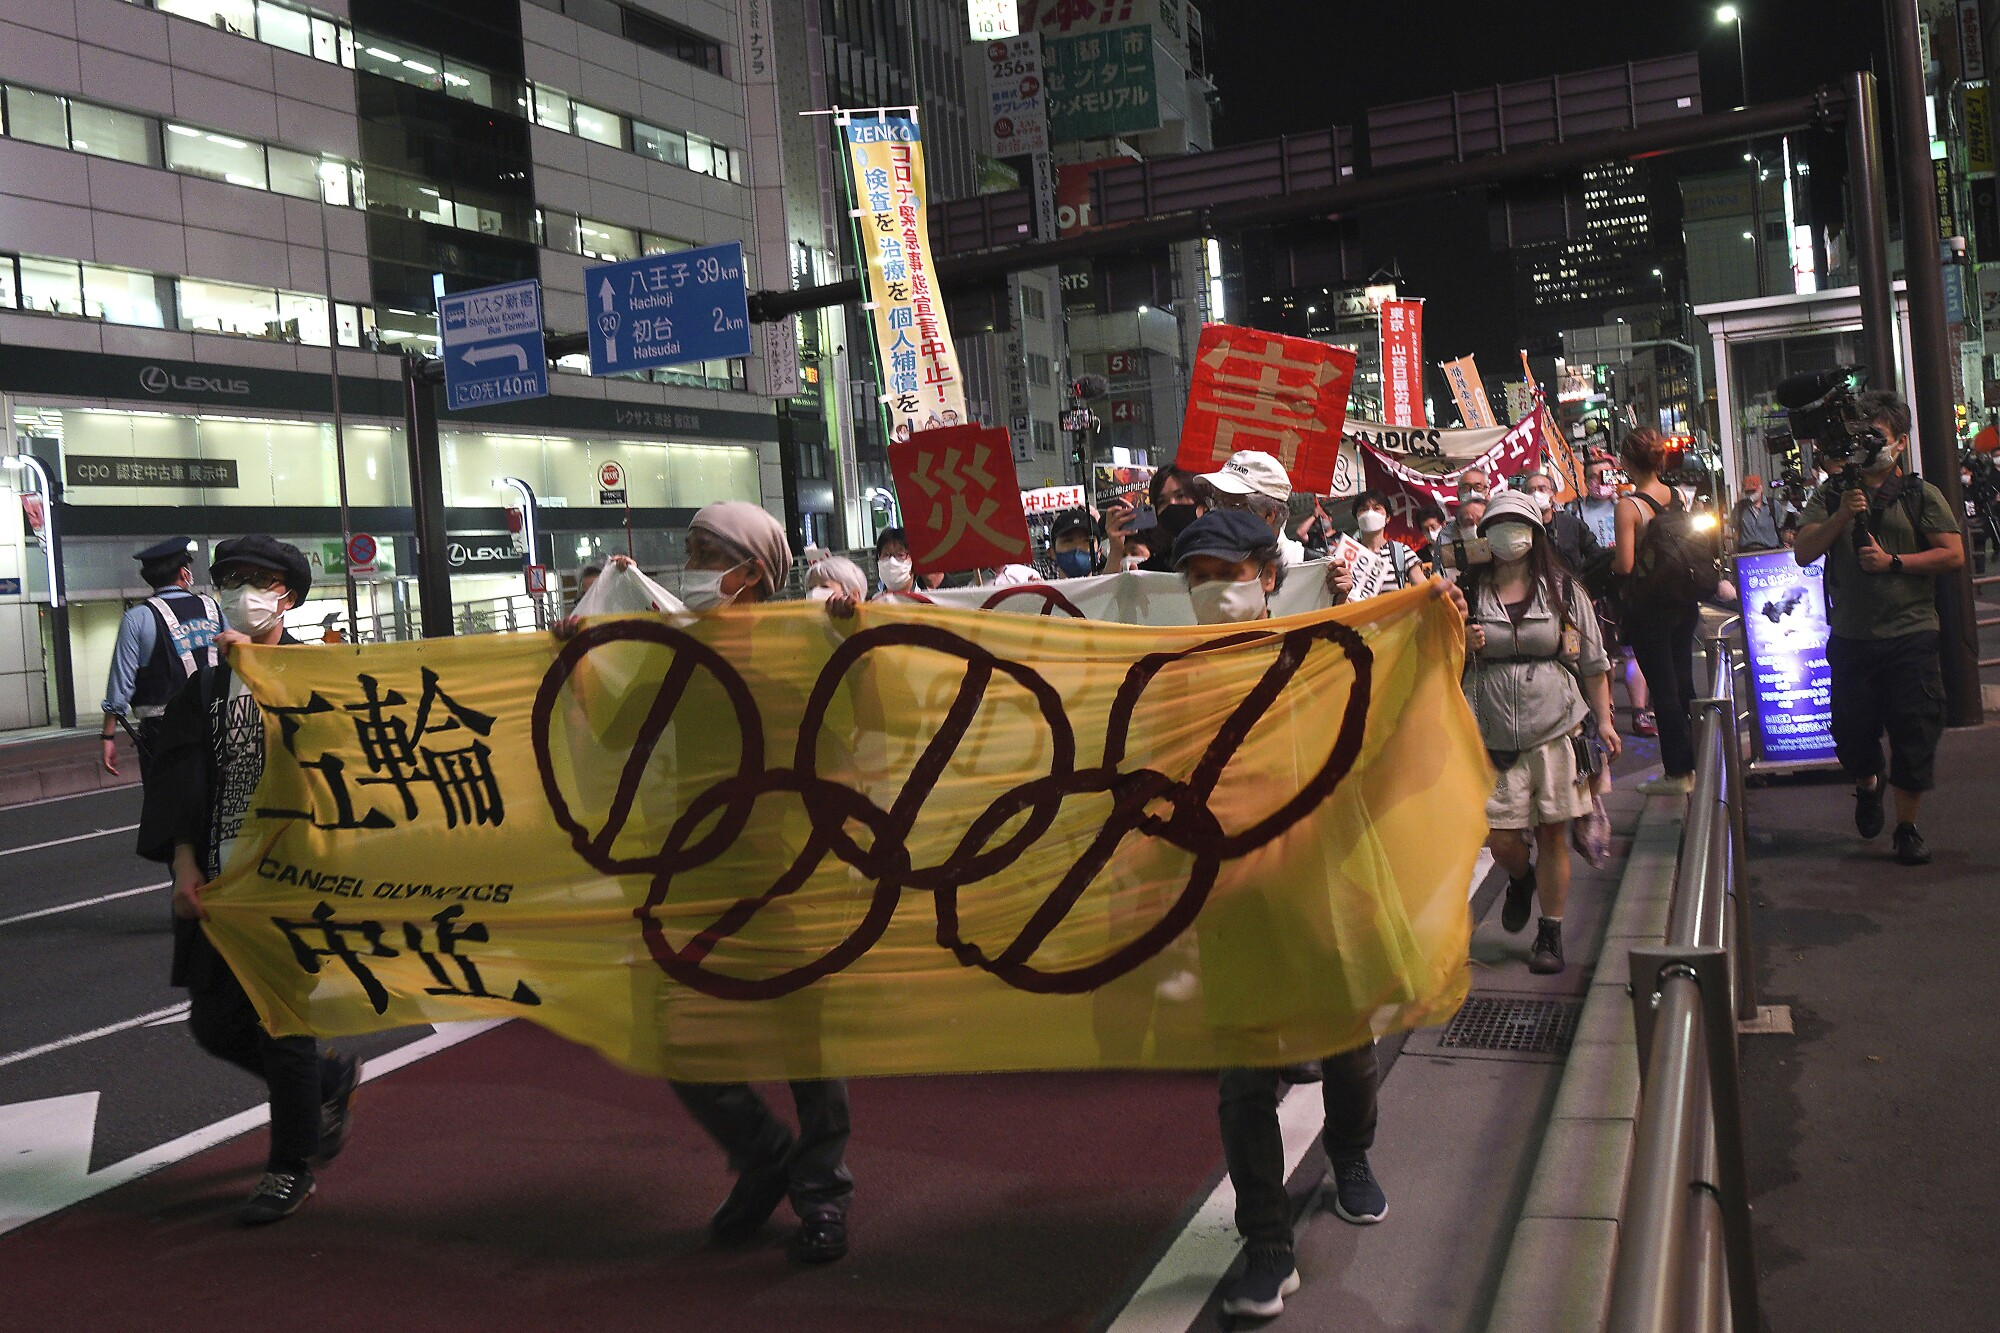 People march at night with banners and signs.